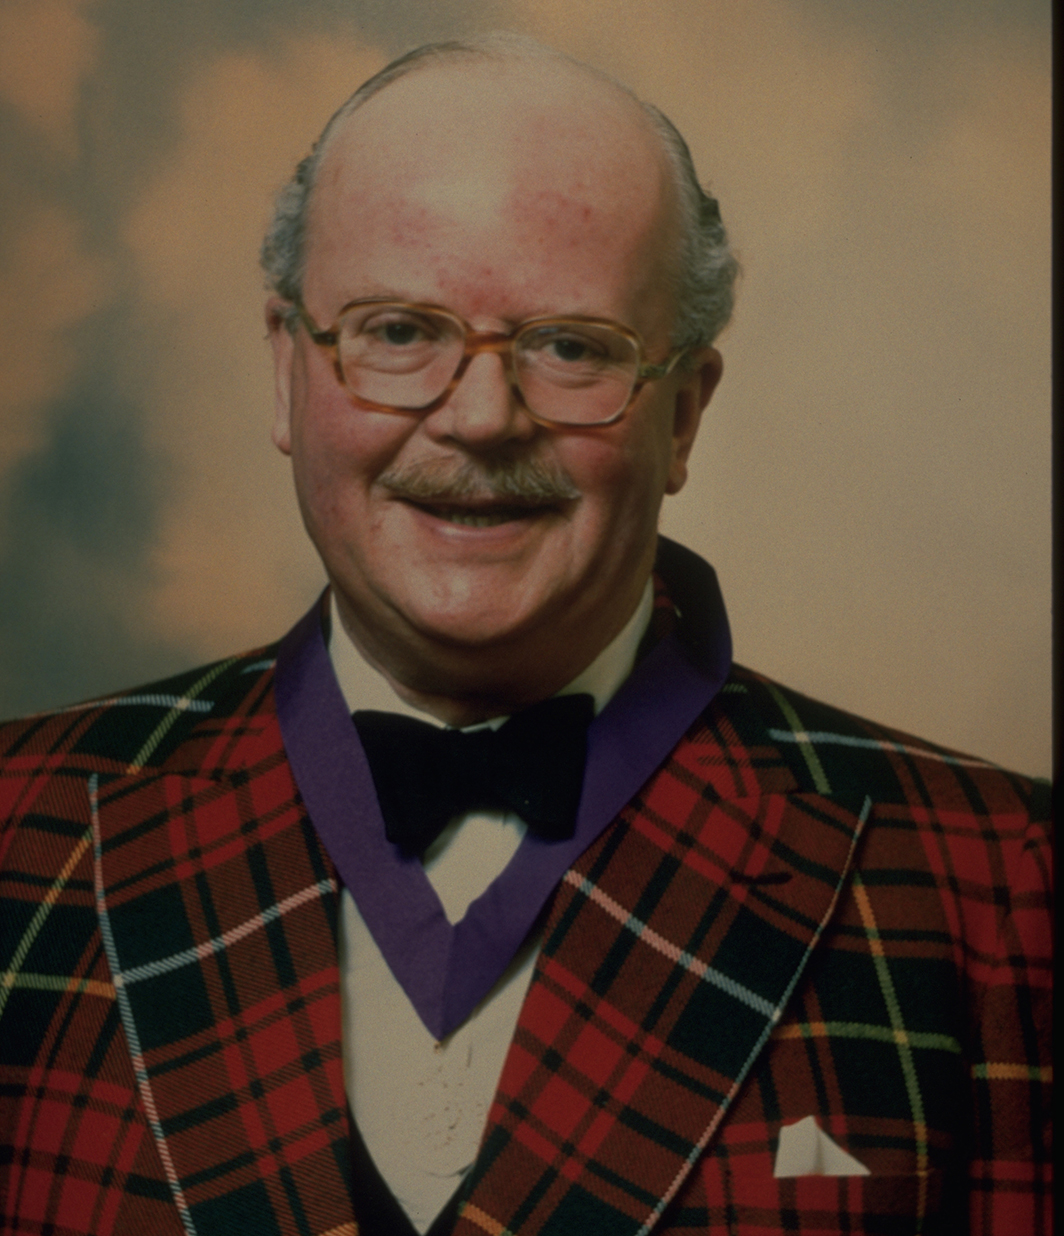 head and shoulders of man in tartan jacket smiling at camera